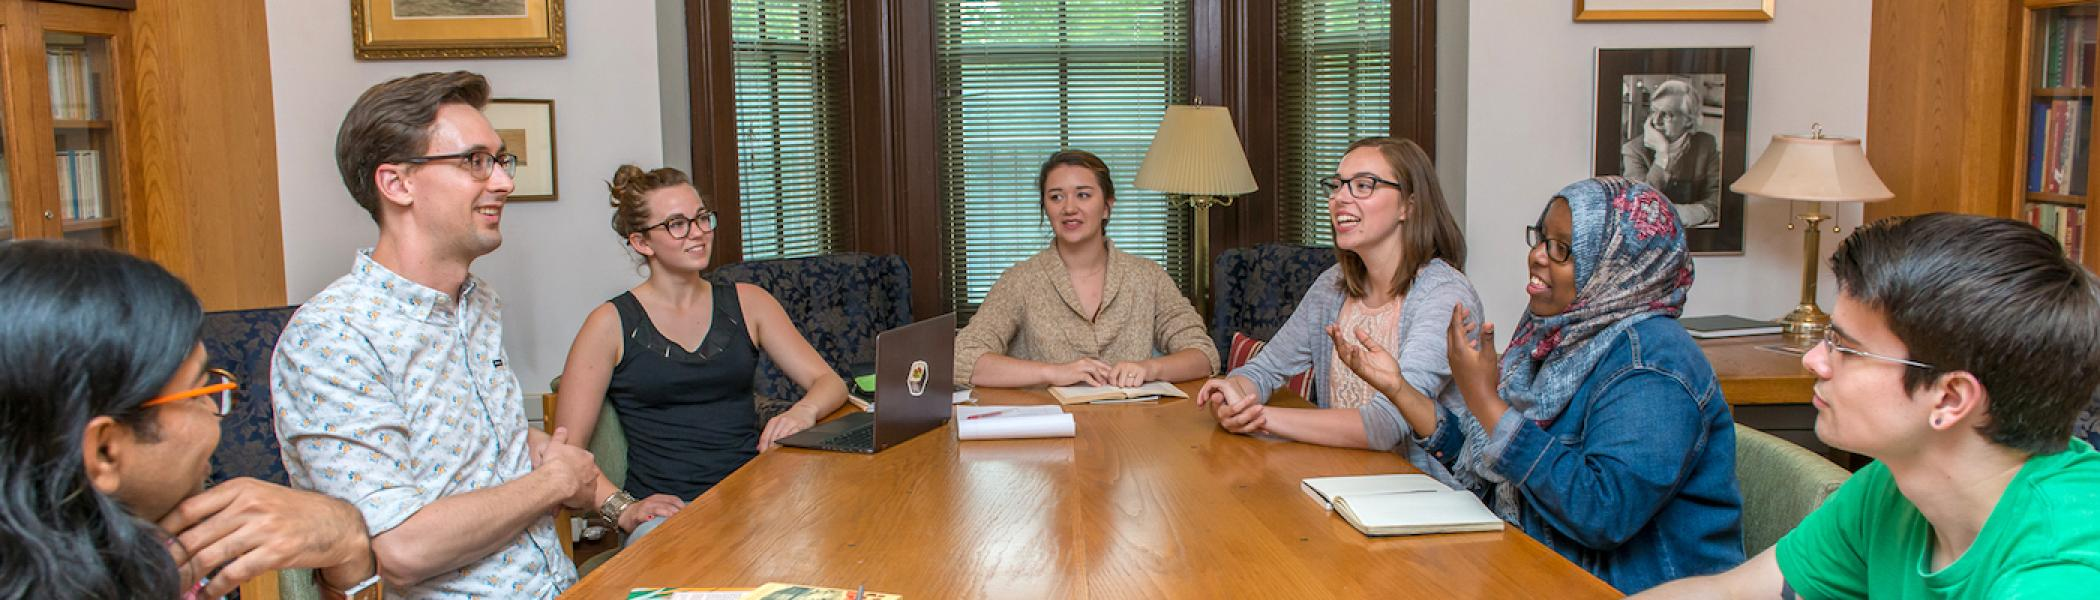 A group of students with a faculty member sitting at a table and talking to each other and smiling